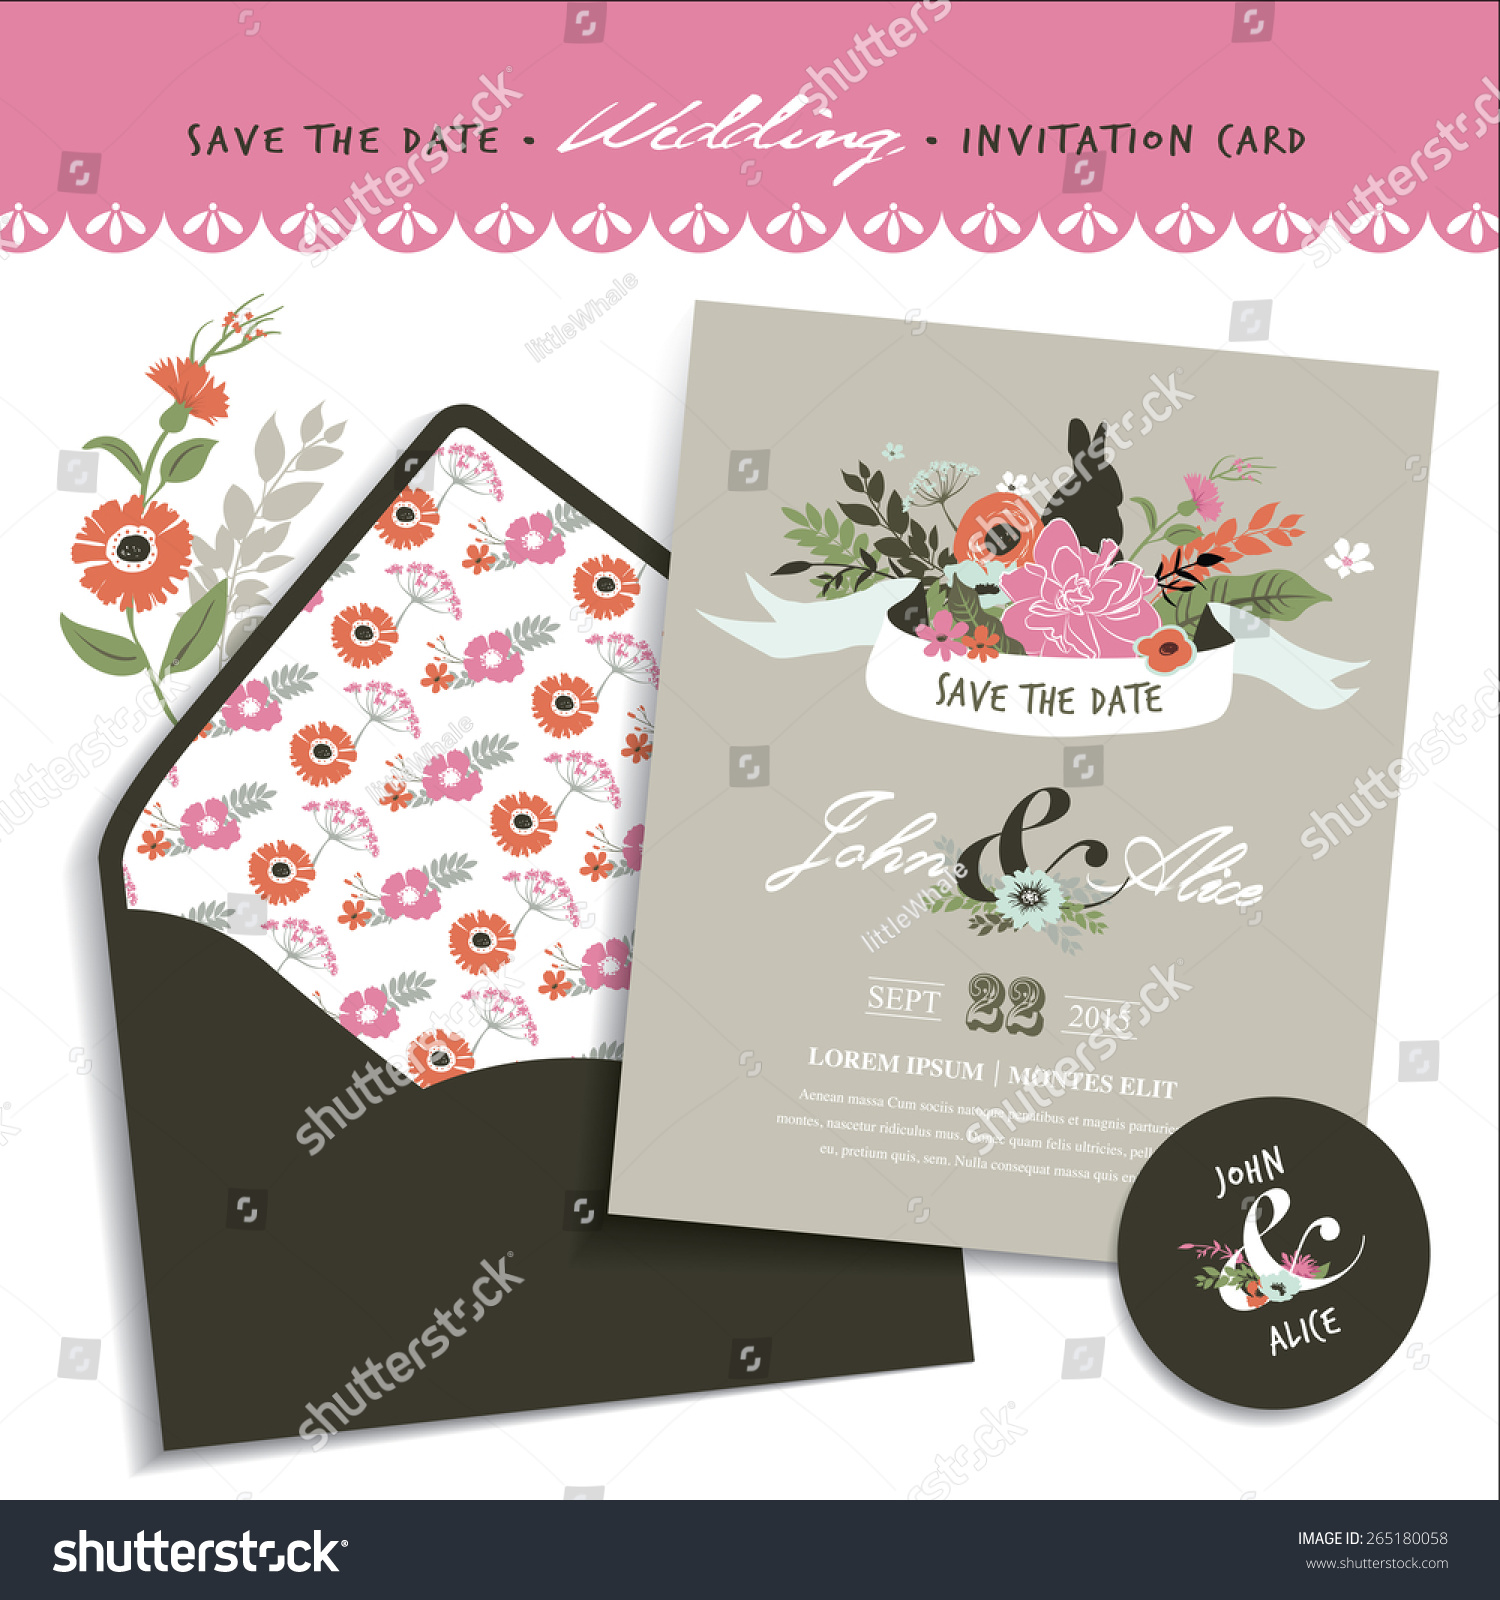 Save date wedding invitation card envelope stock vector 265180058 wedding invitation card envelope design stopboris Image collections